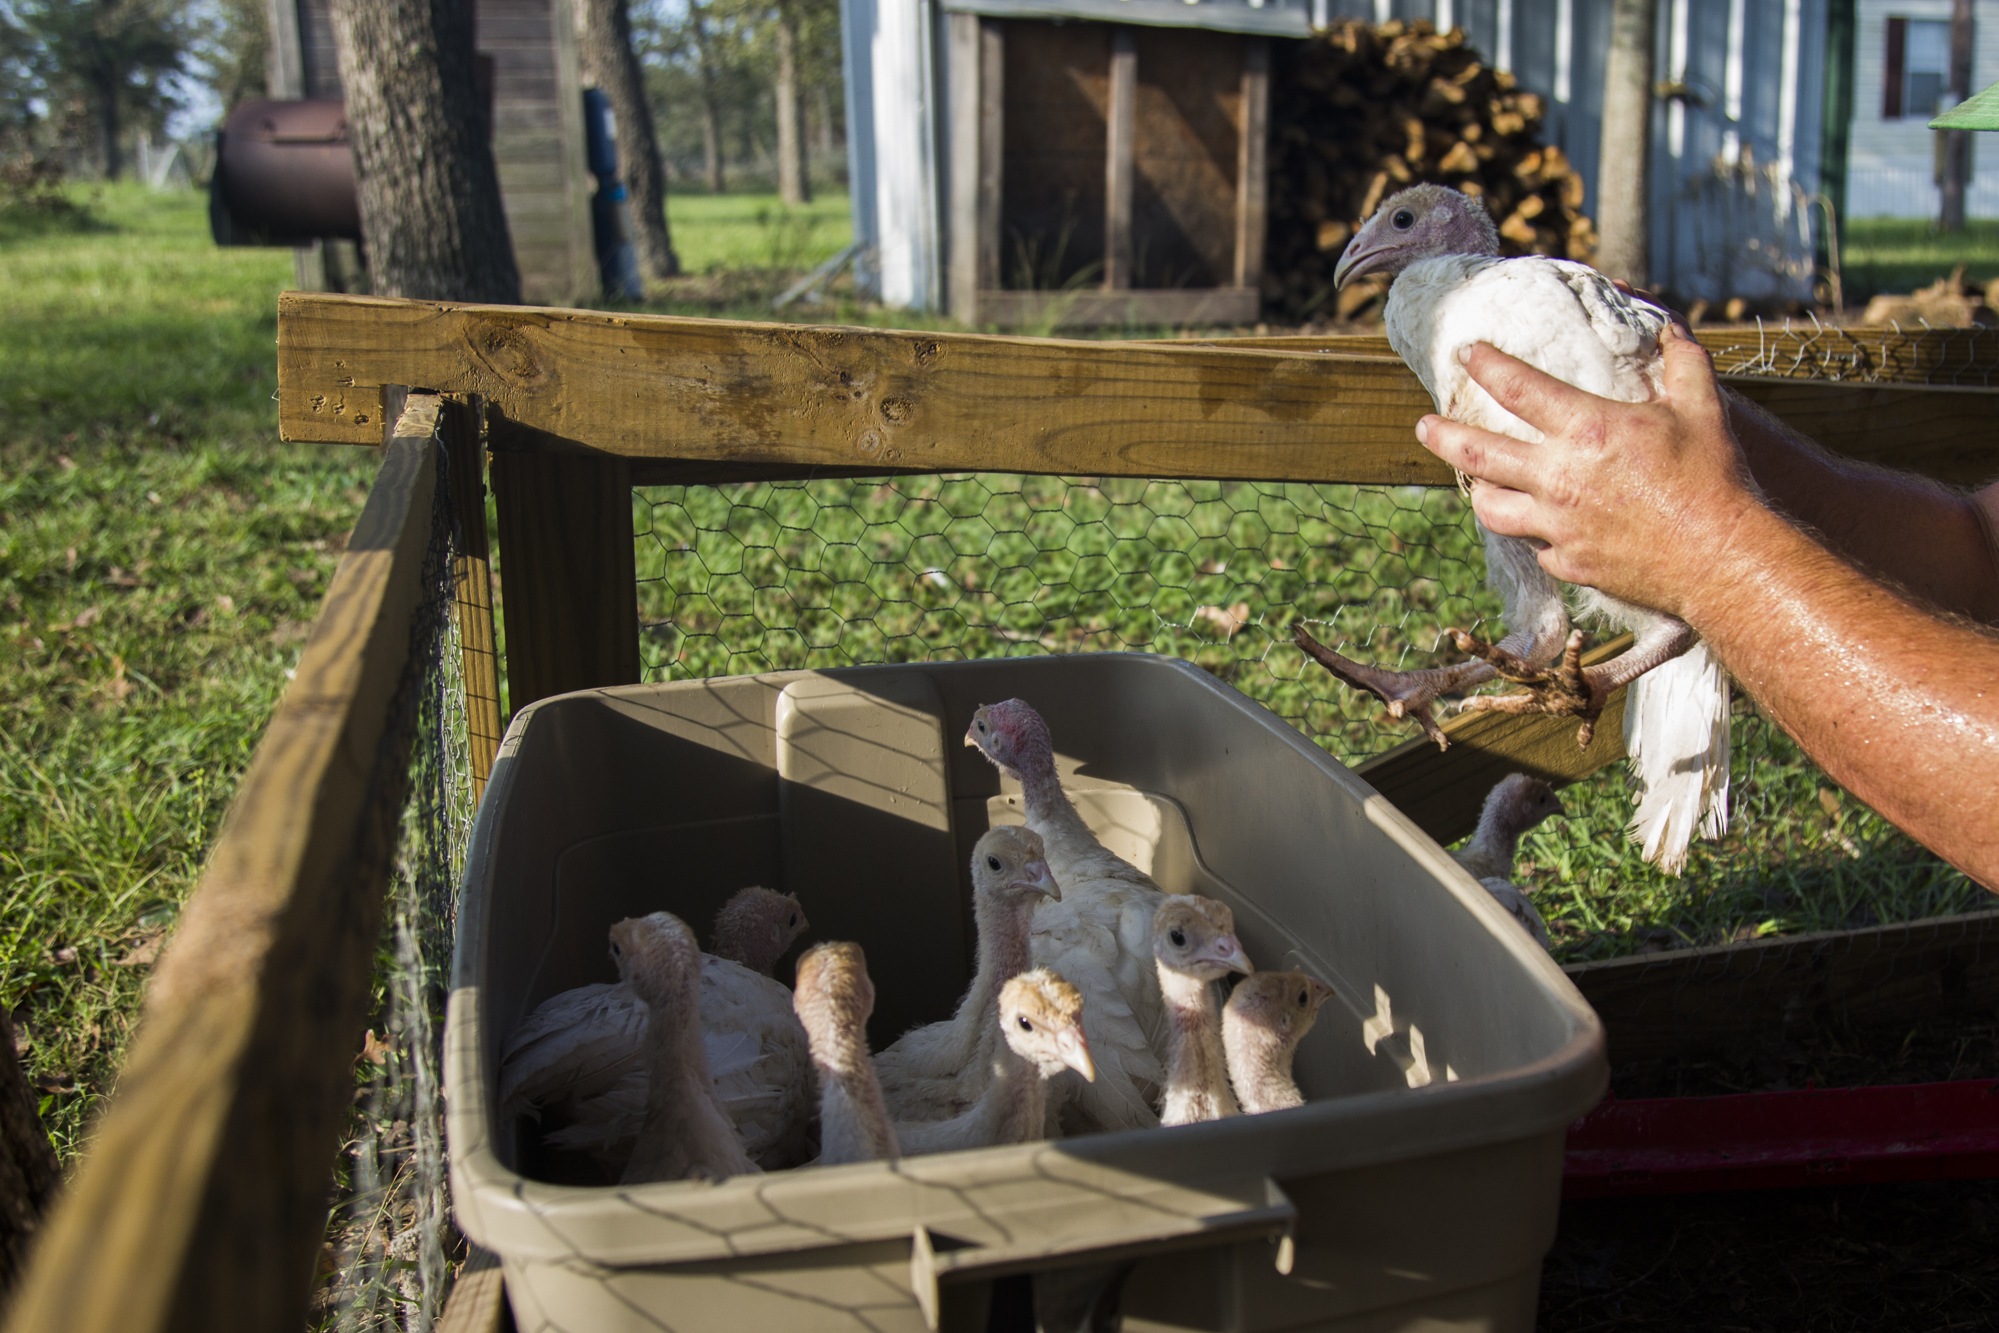 Keller places some of his larger turkeys in a tub before transferring them over to their temporary mobile pen.